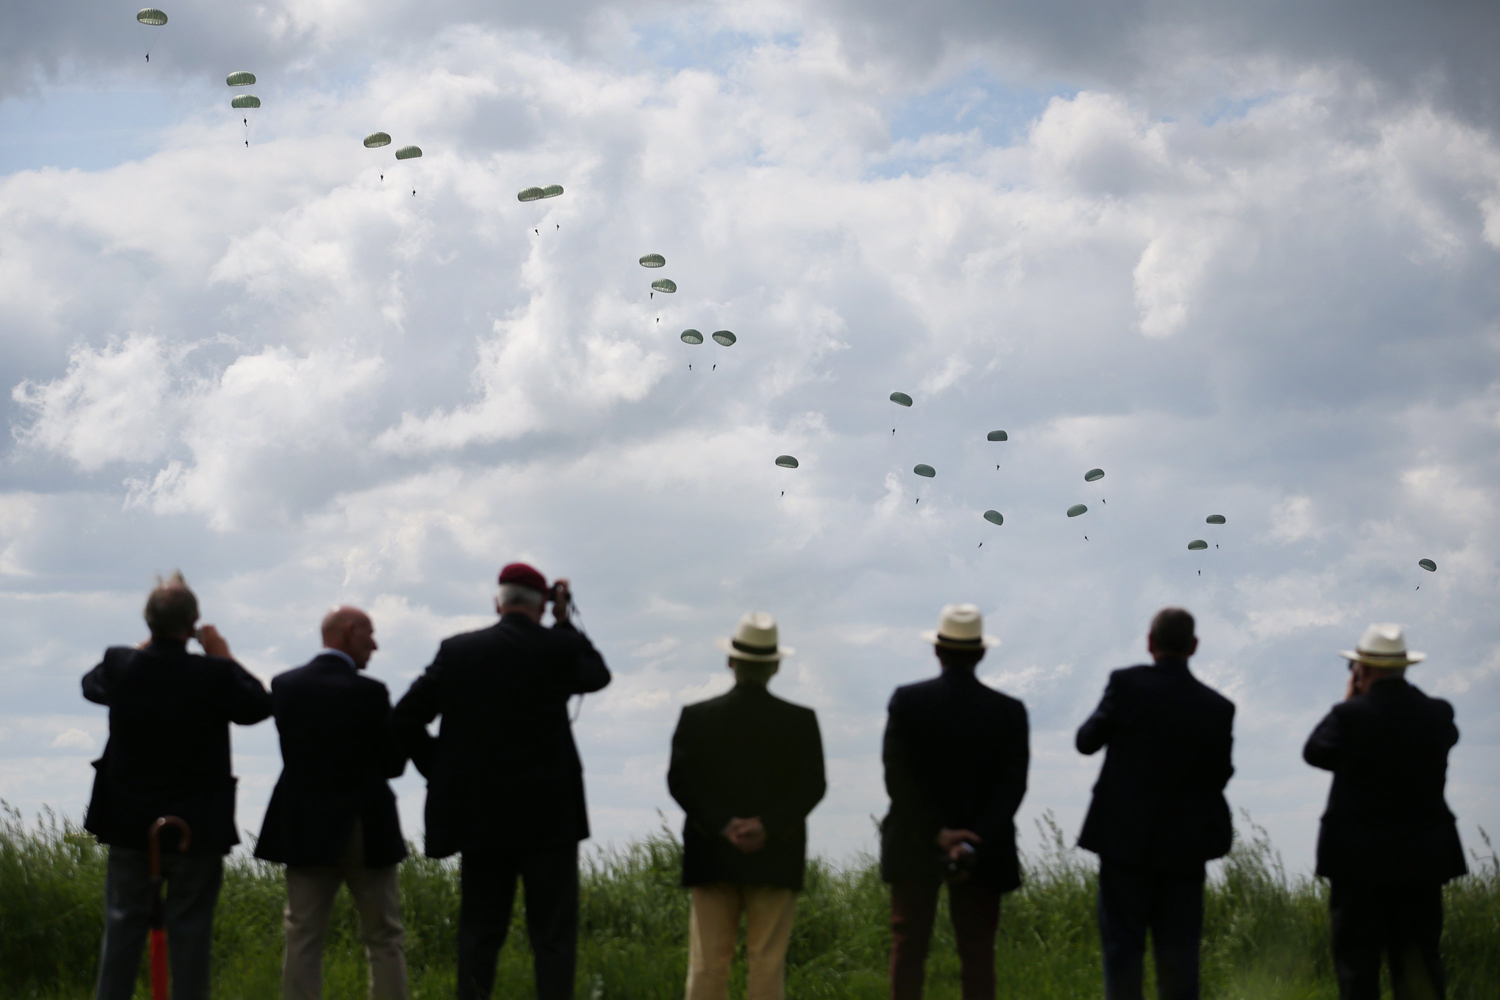 June 5, 2014. People watch as a parachute drop takes place on near Ranville, France. Friday 6th June is the 70th anniversary of the D-Day landings.